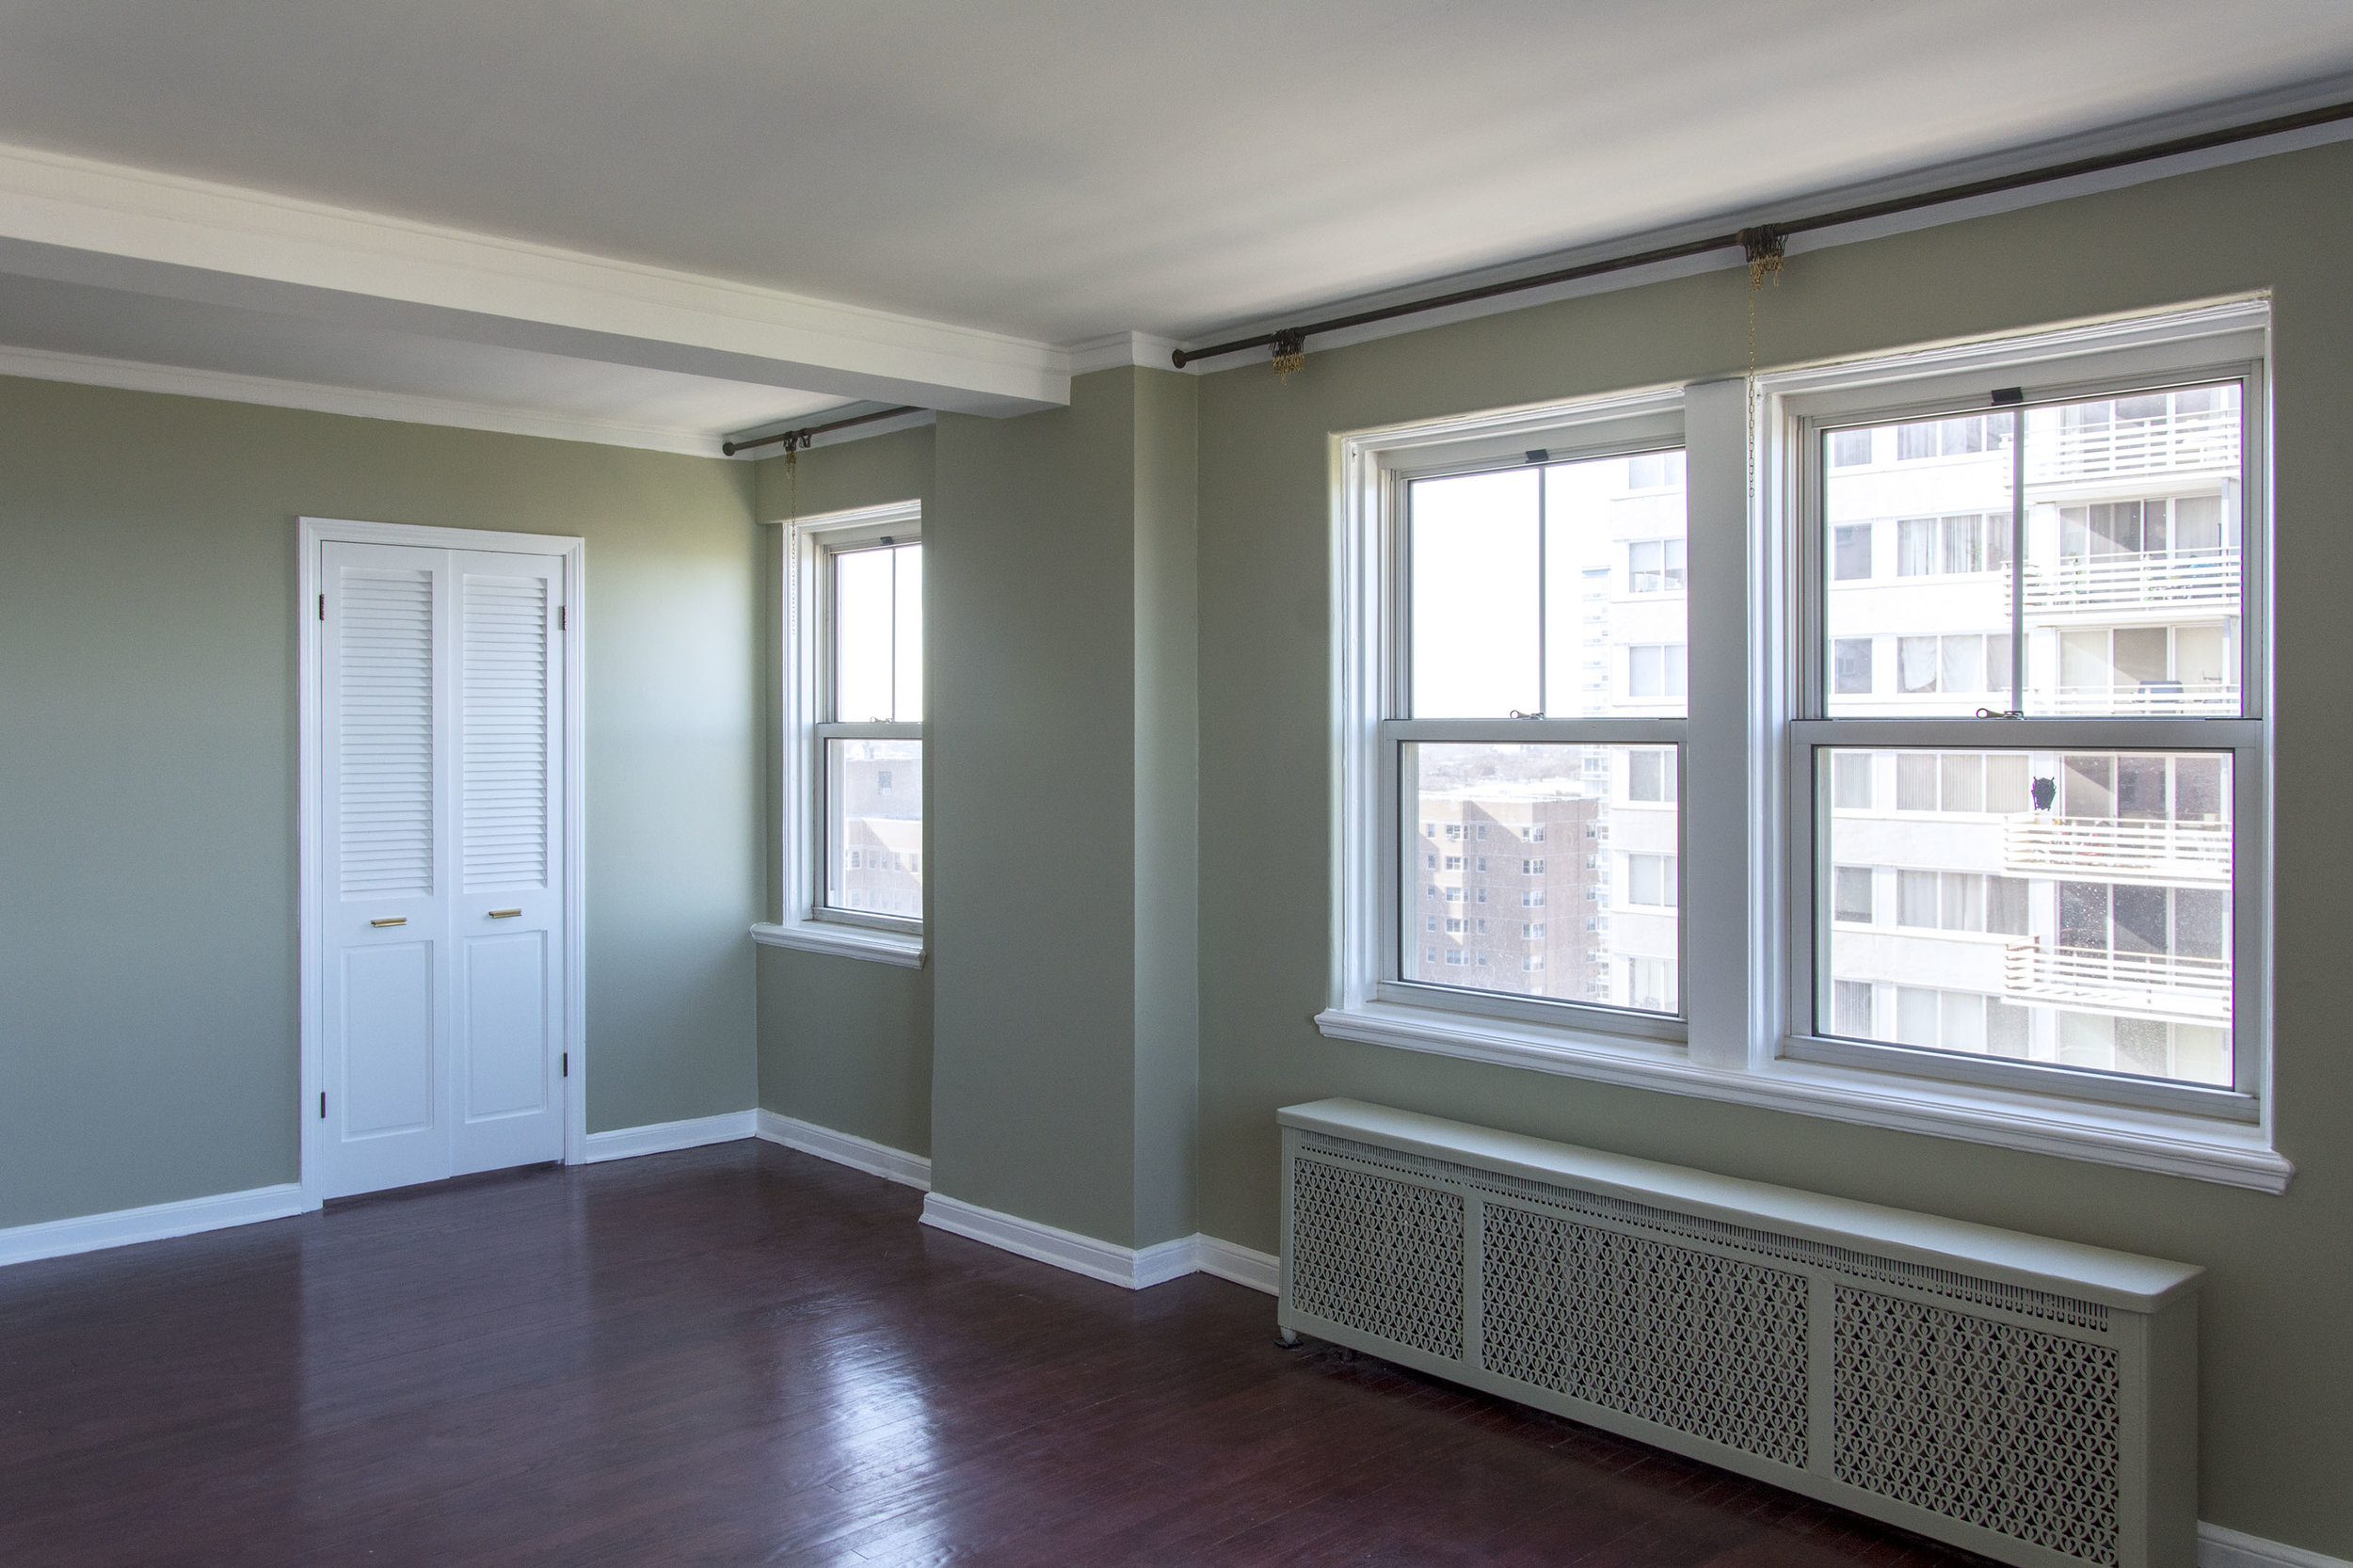 Chicago interior paint update Blue Door Chicago Sage SW 2860 Sherwin Williams